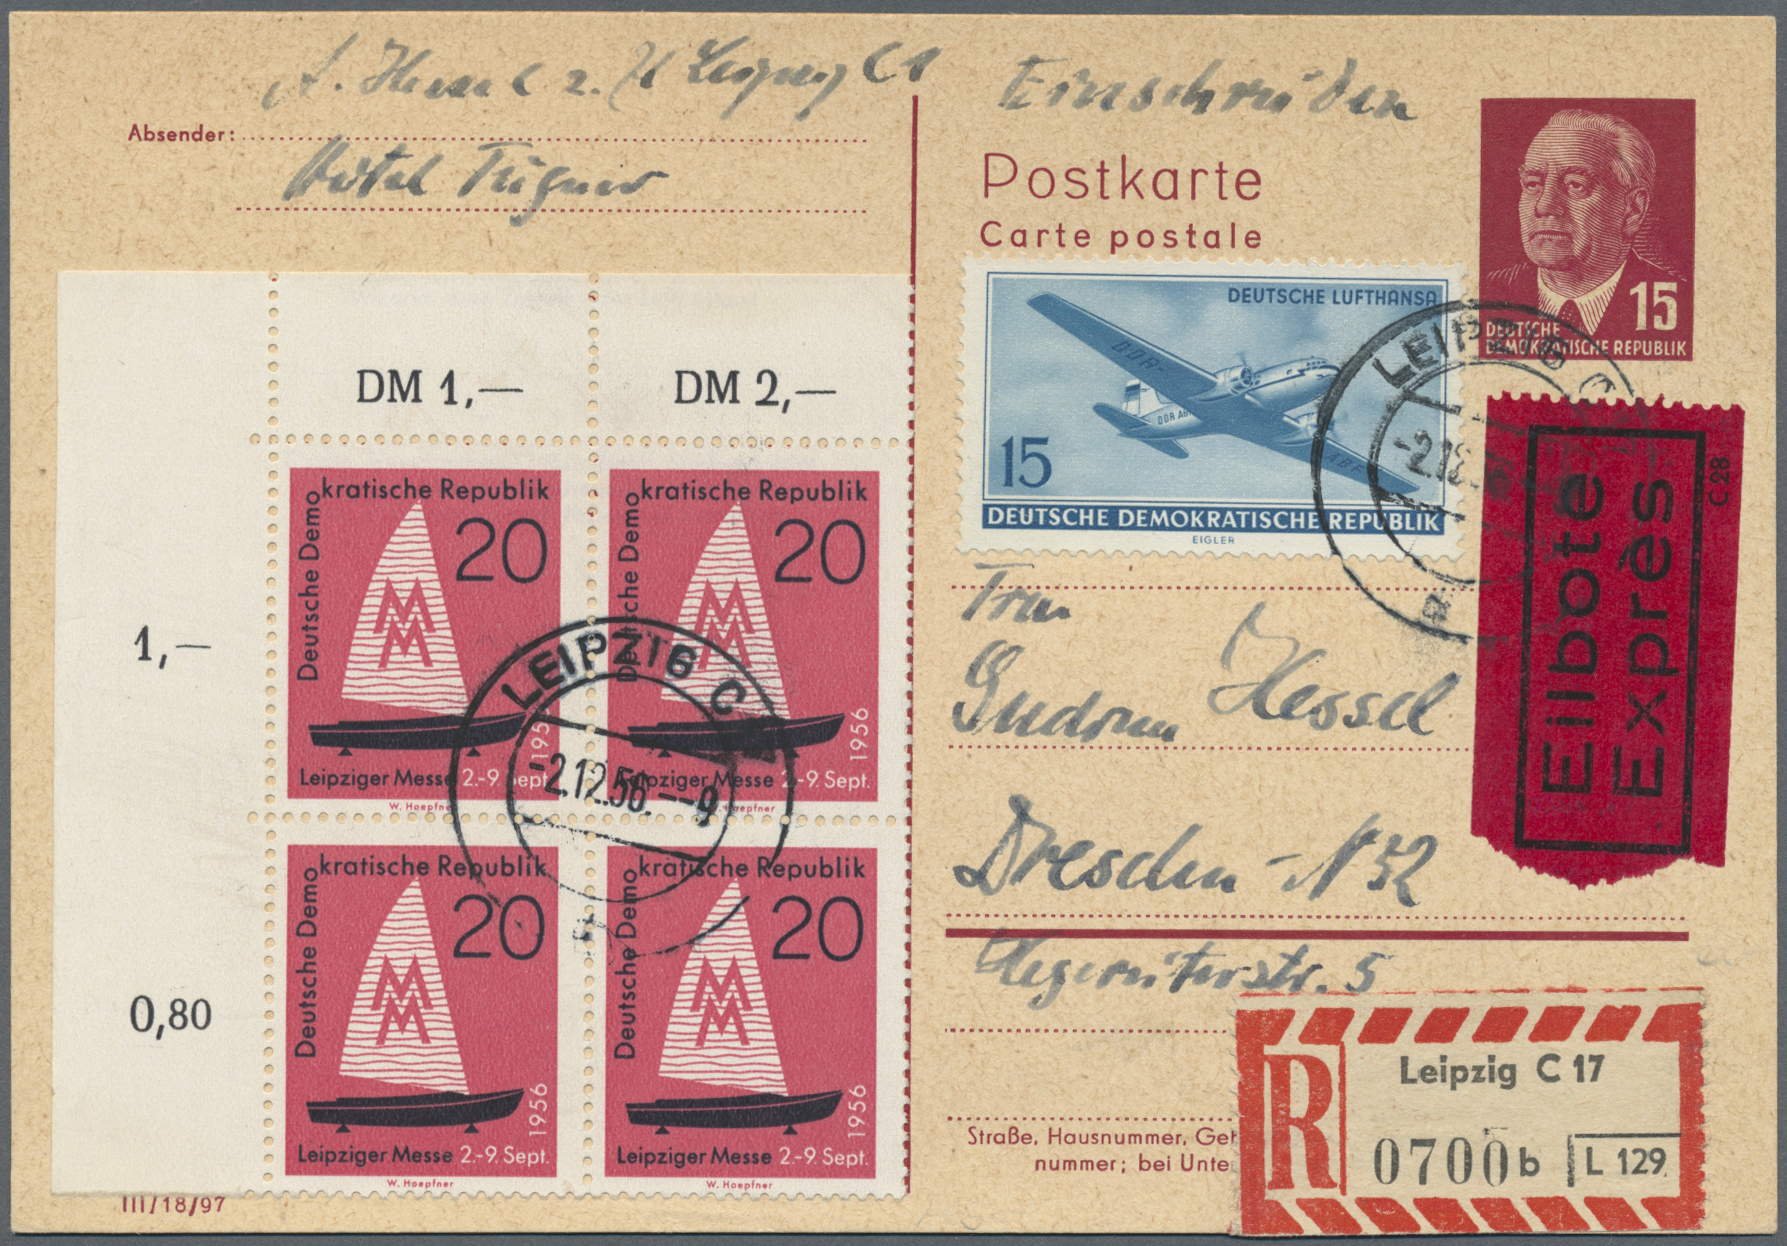 Lot 38076 - ddr - ganzsachen  -  Auktionshaus Christoph Gärtner GmbH & Co. KG Collections Germany,  Collections Supplement, Surprise boxes #39 Day 7